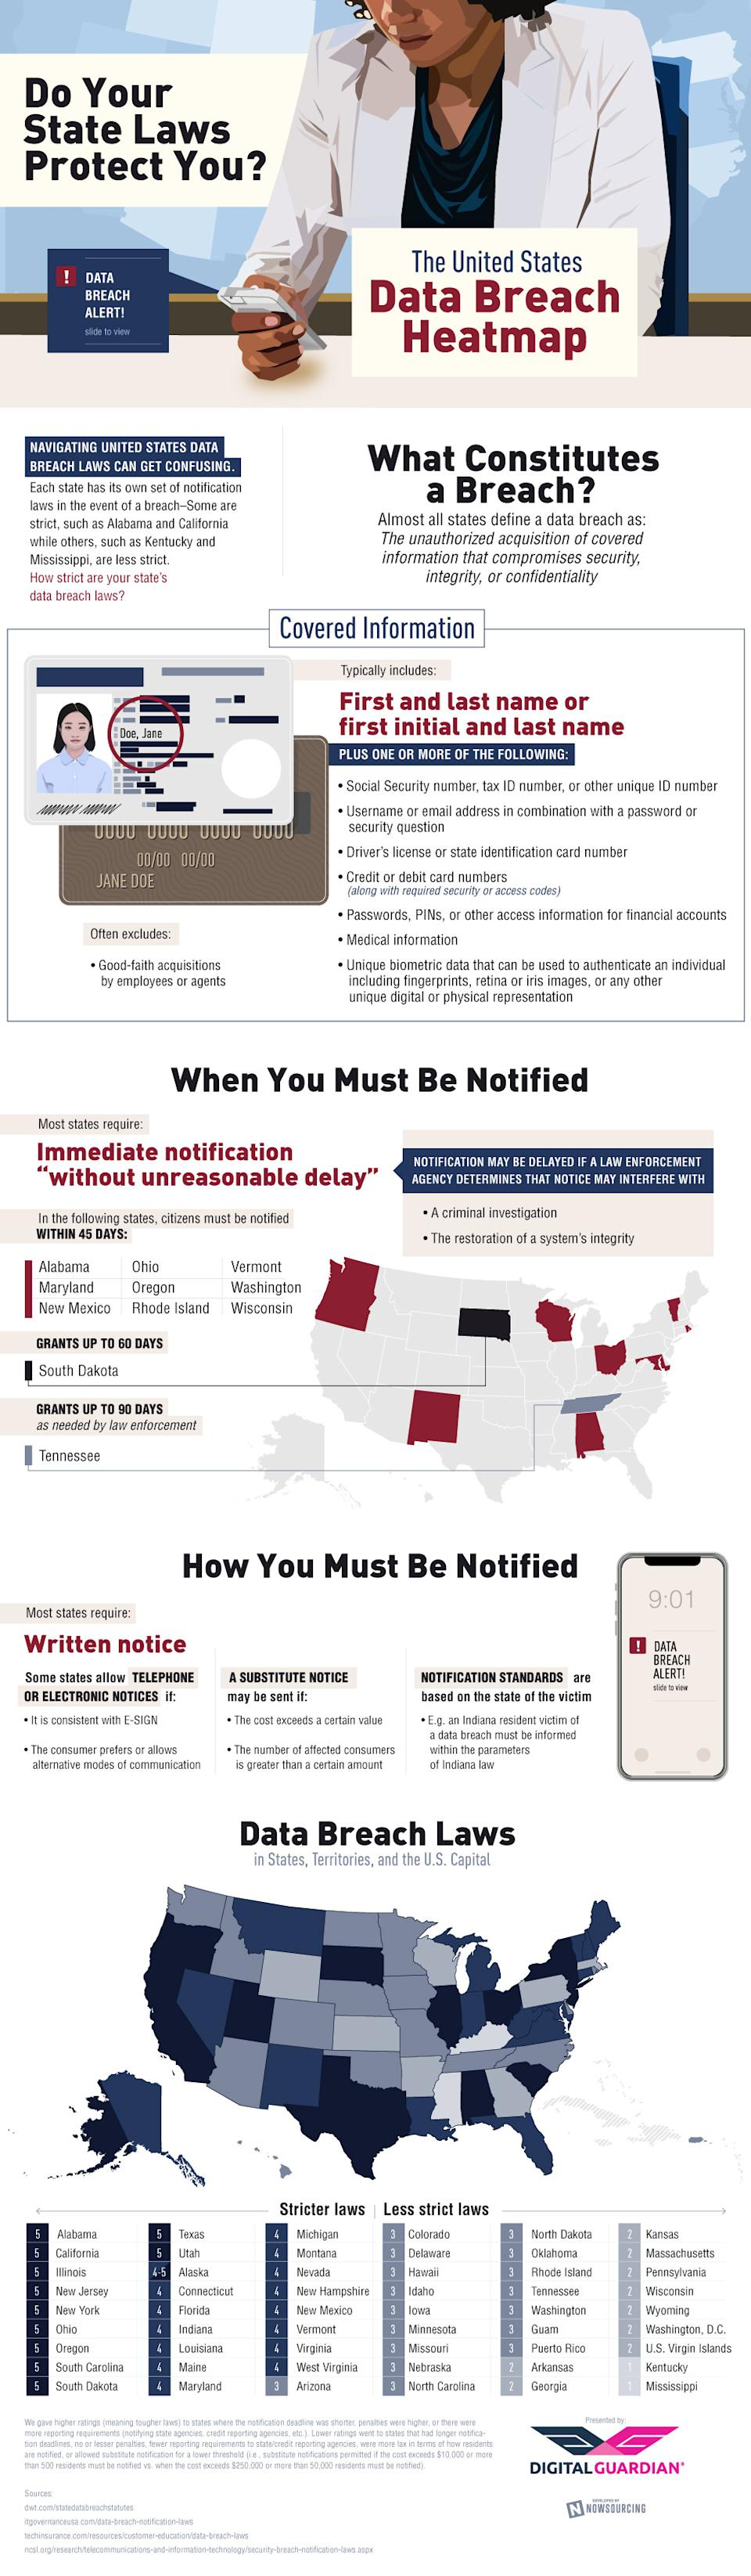 Do Your State Laws Protect Your? The United States Data Breach Heatmap Infographic